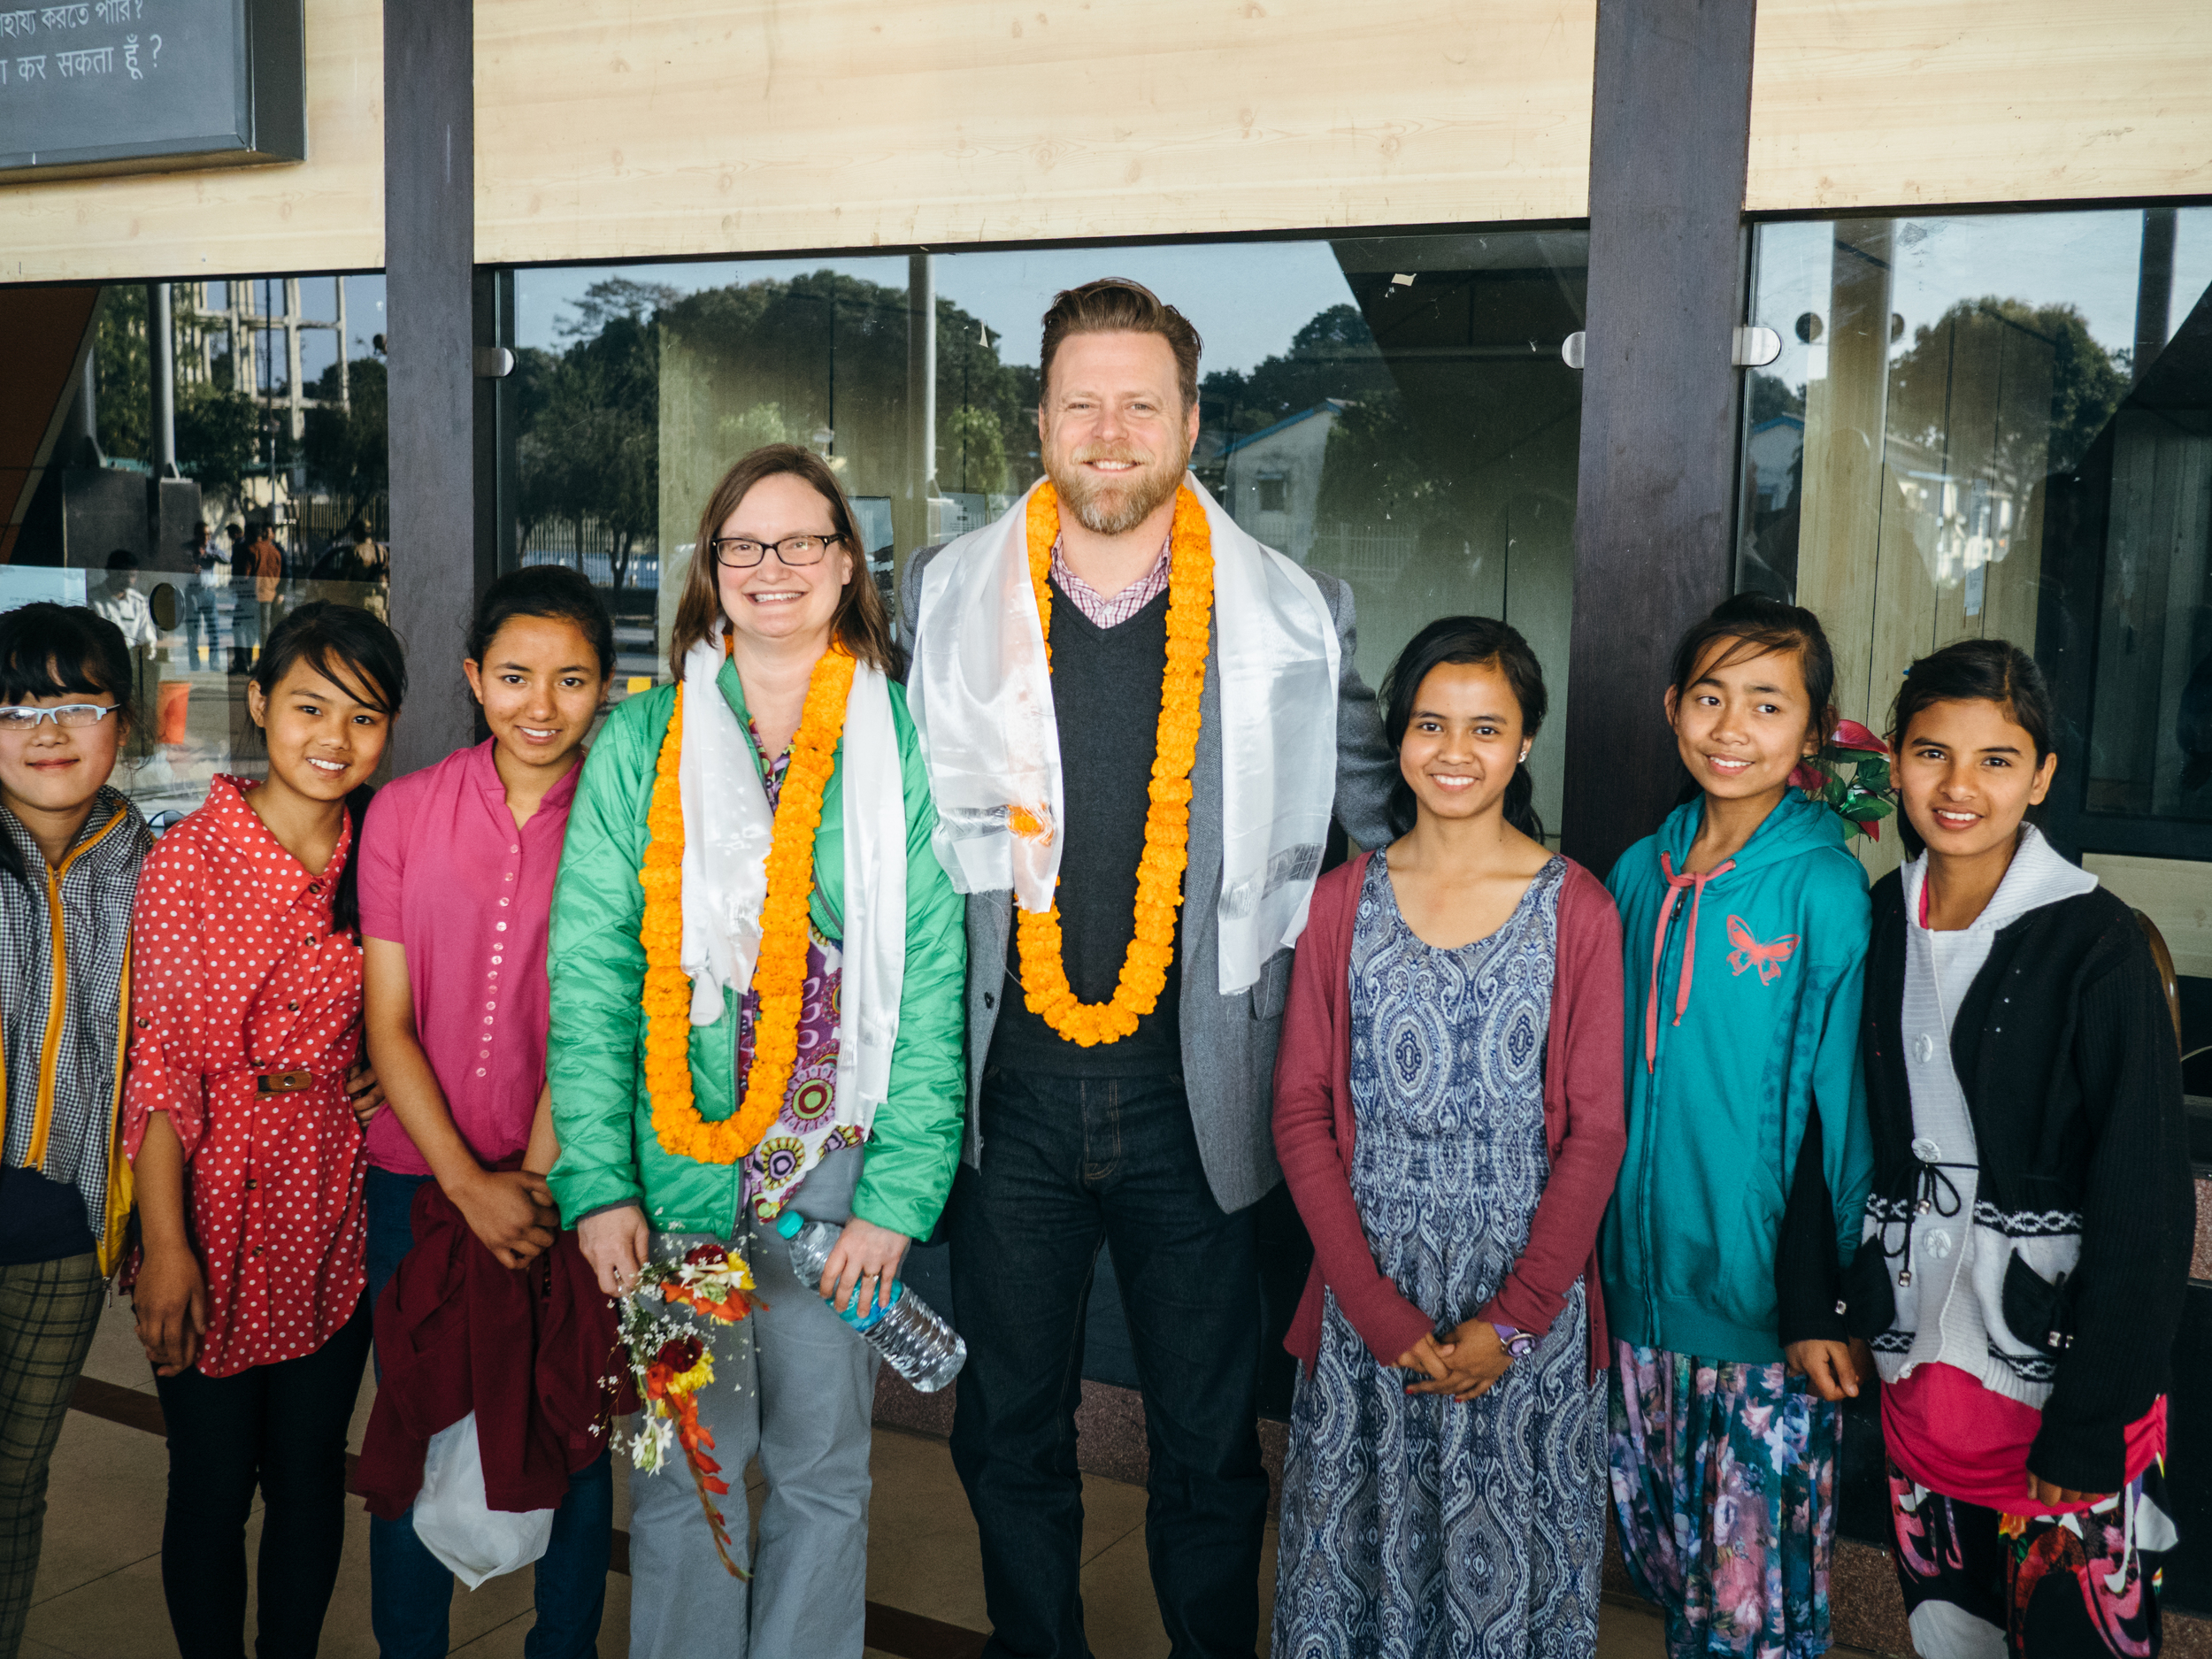 The kids from our Kalimpong 1 (India) homes greeted John and Kori warmly upon their arrival at the Siliguri Airport.